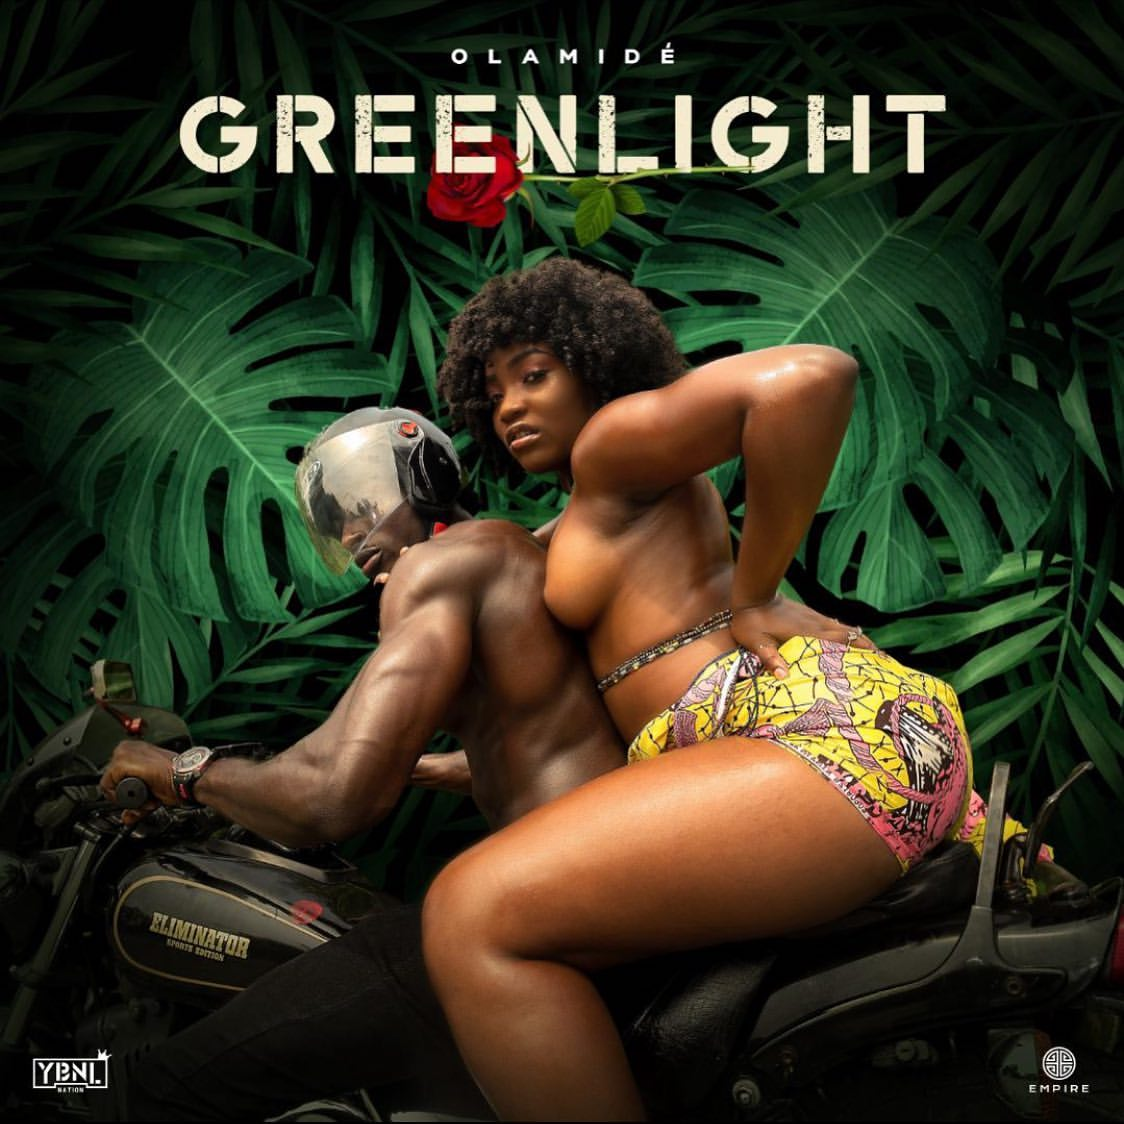 DOWNLOAD MP3: Greenlight new song by Olamide